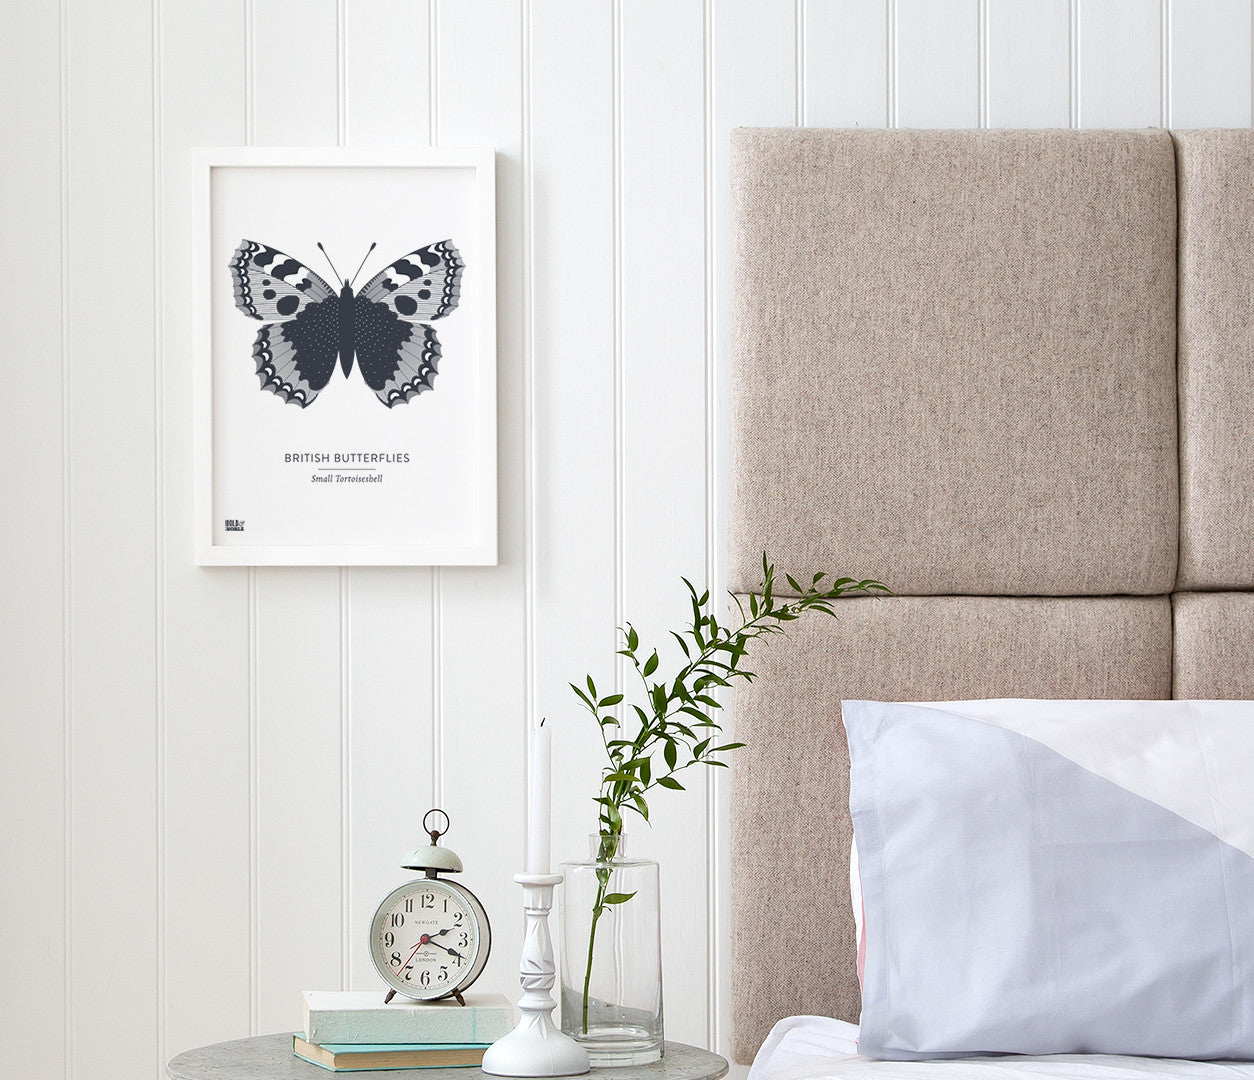 Modern Nature Print Designs for the Home